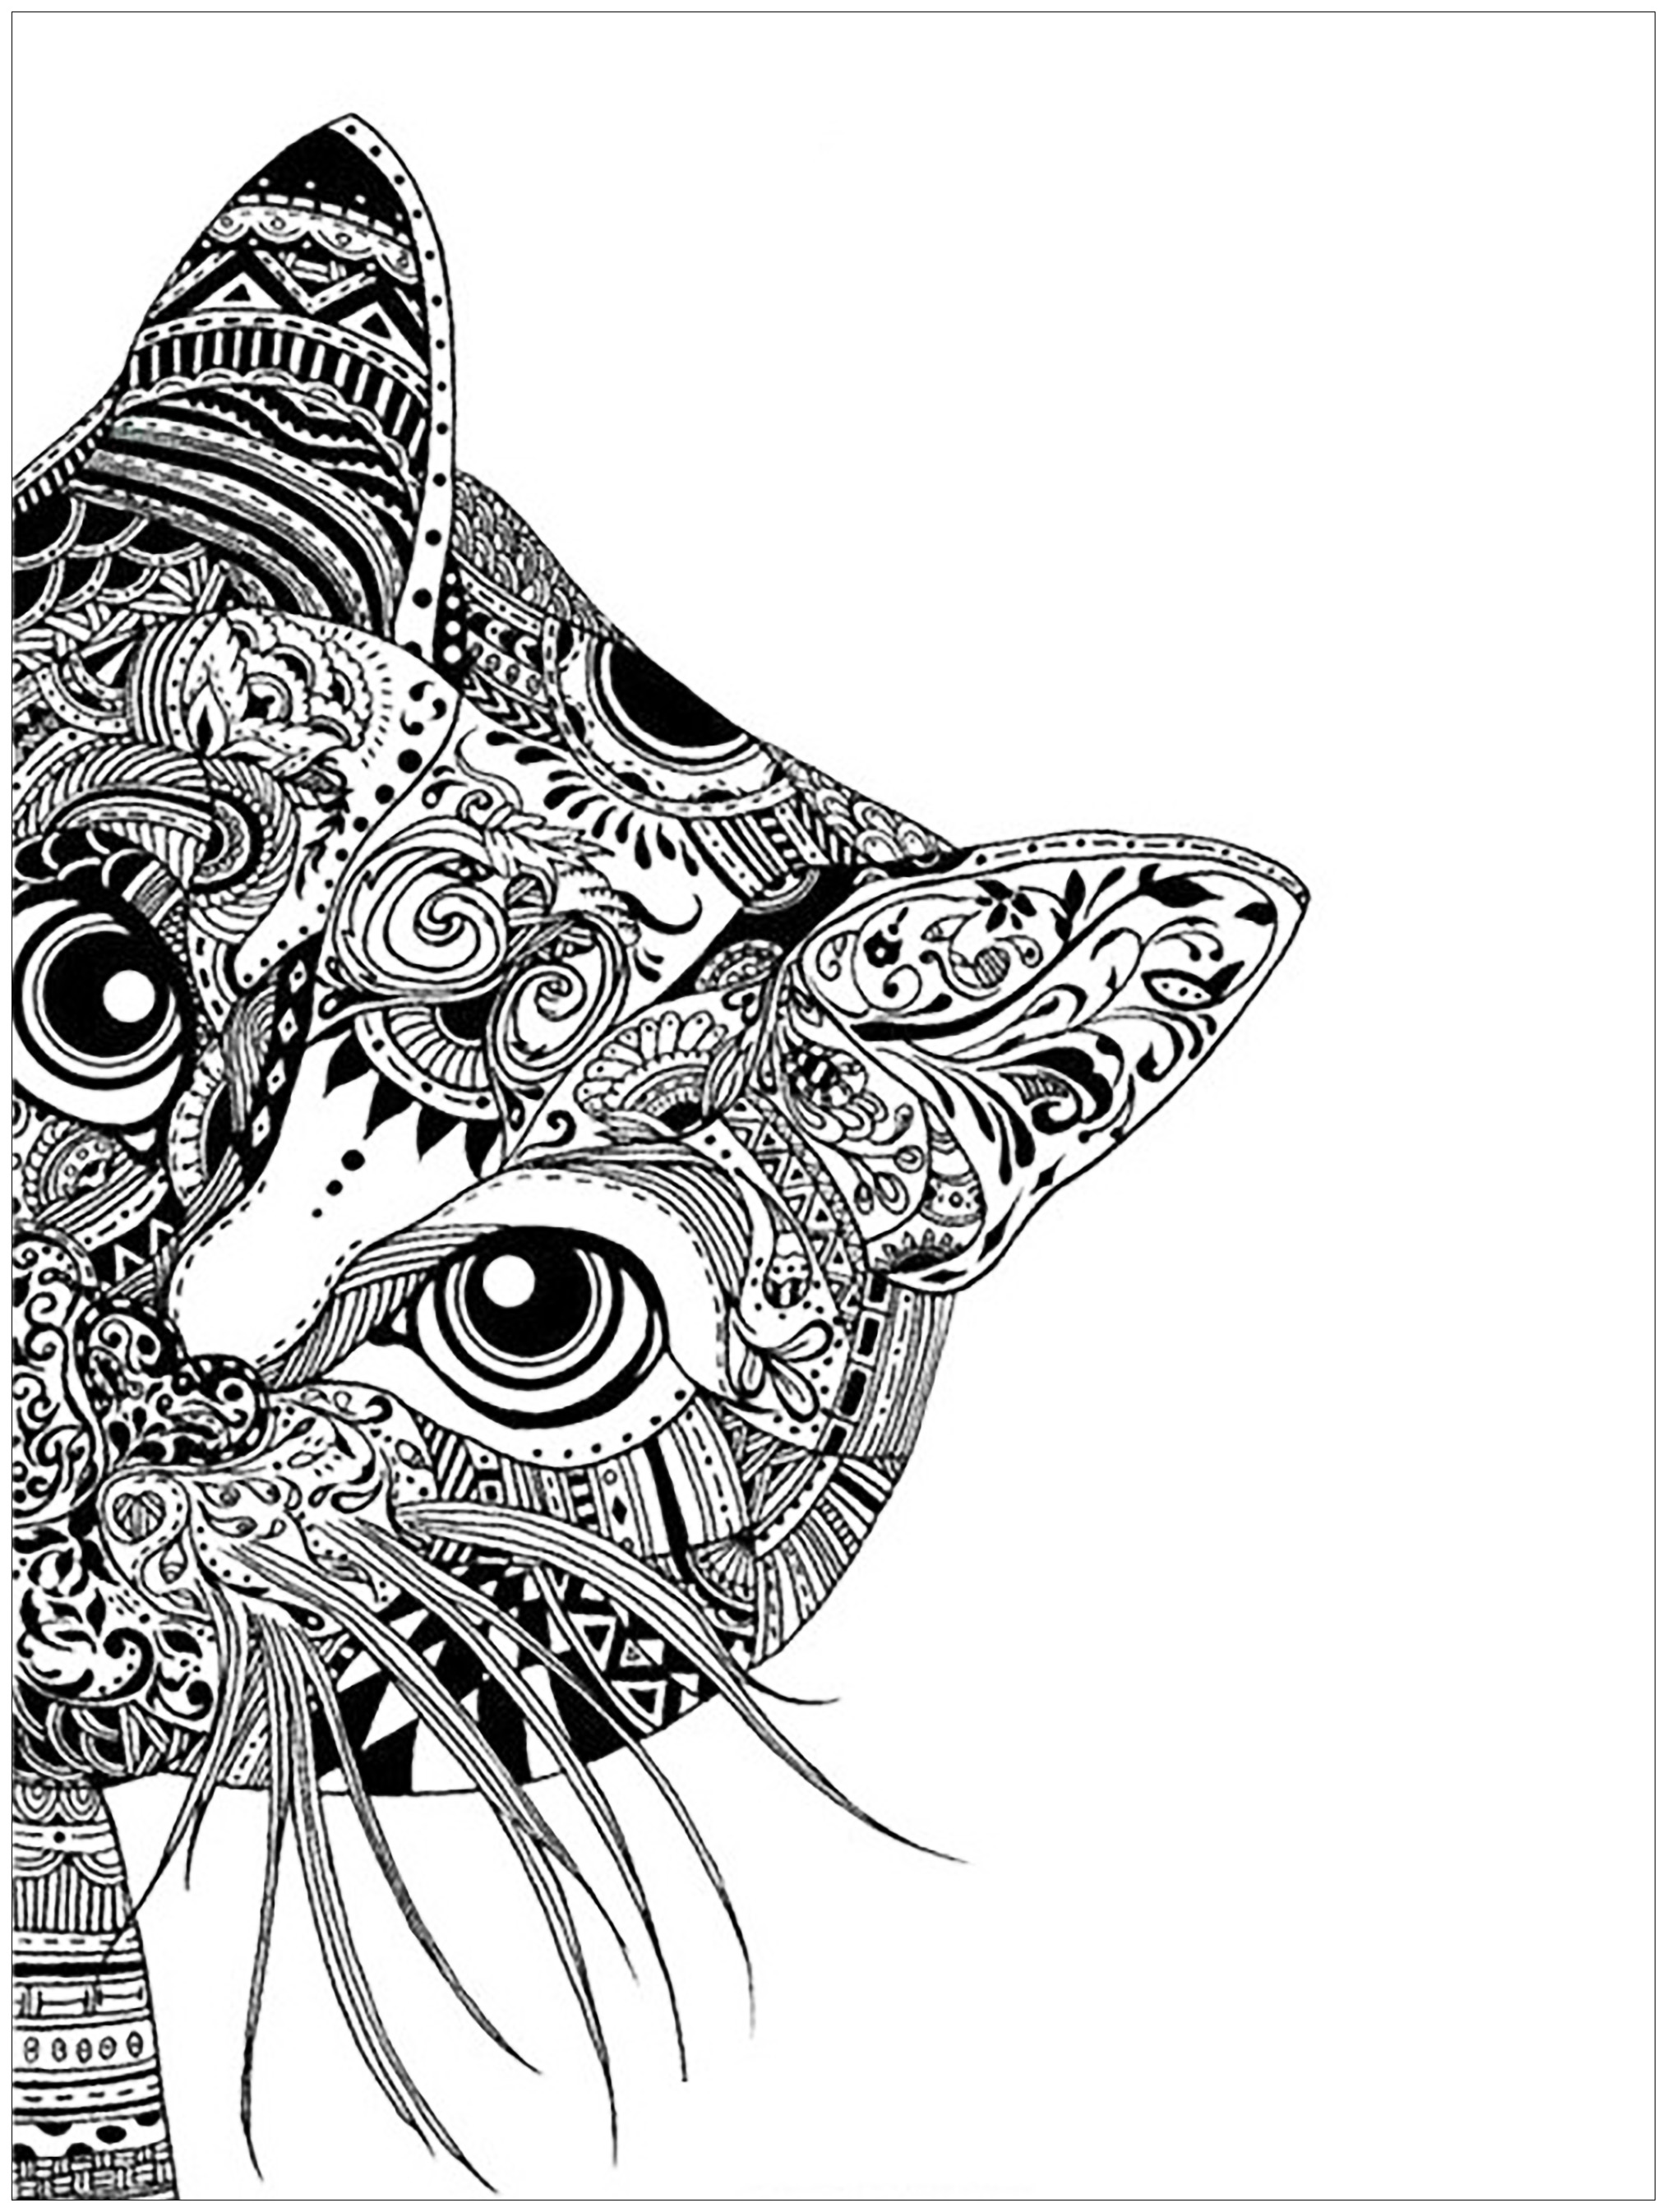 colouring pages of cats cat head cats adult coloring pages cats colouring pages of